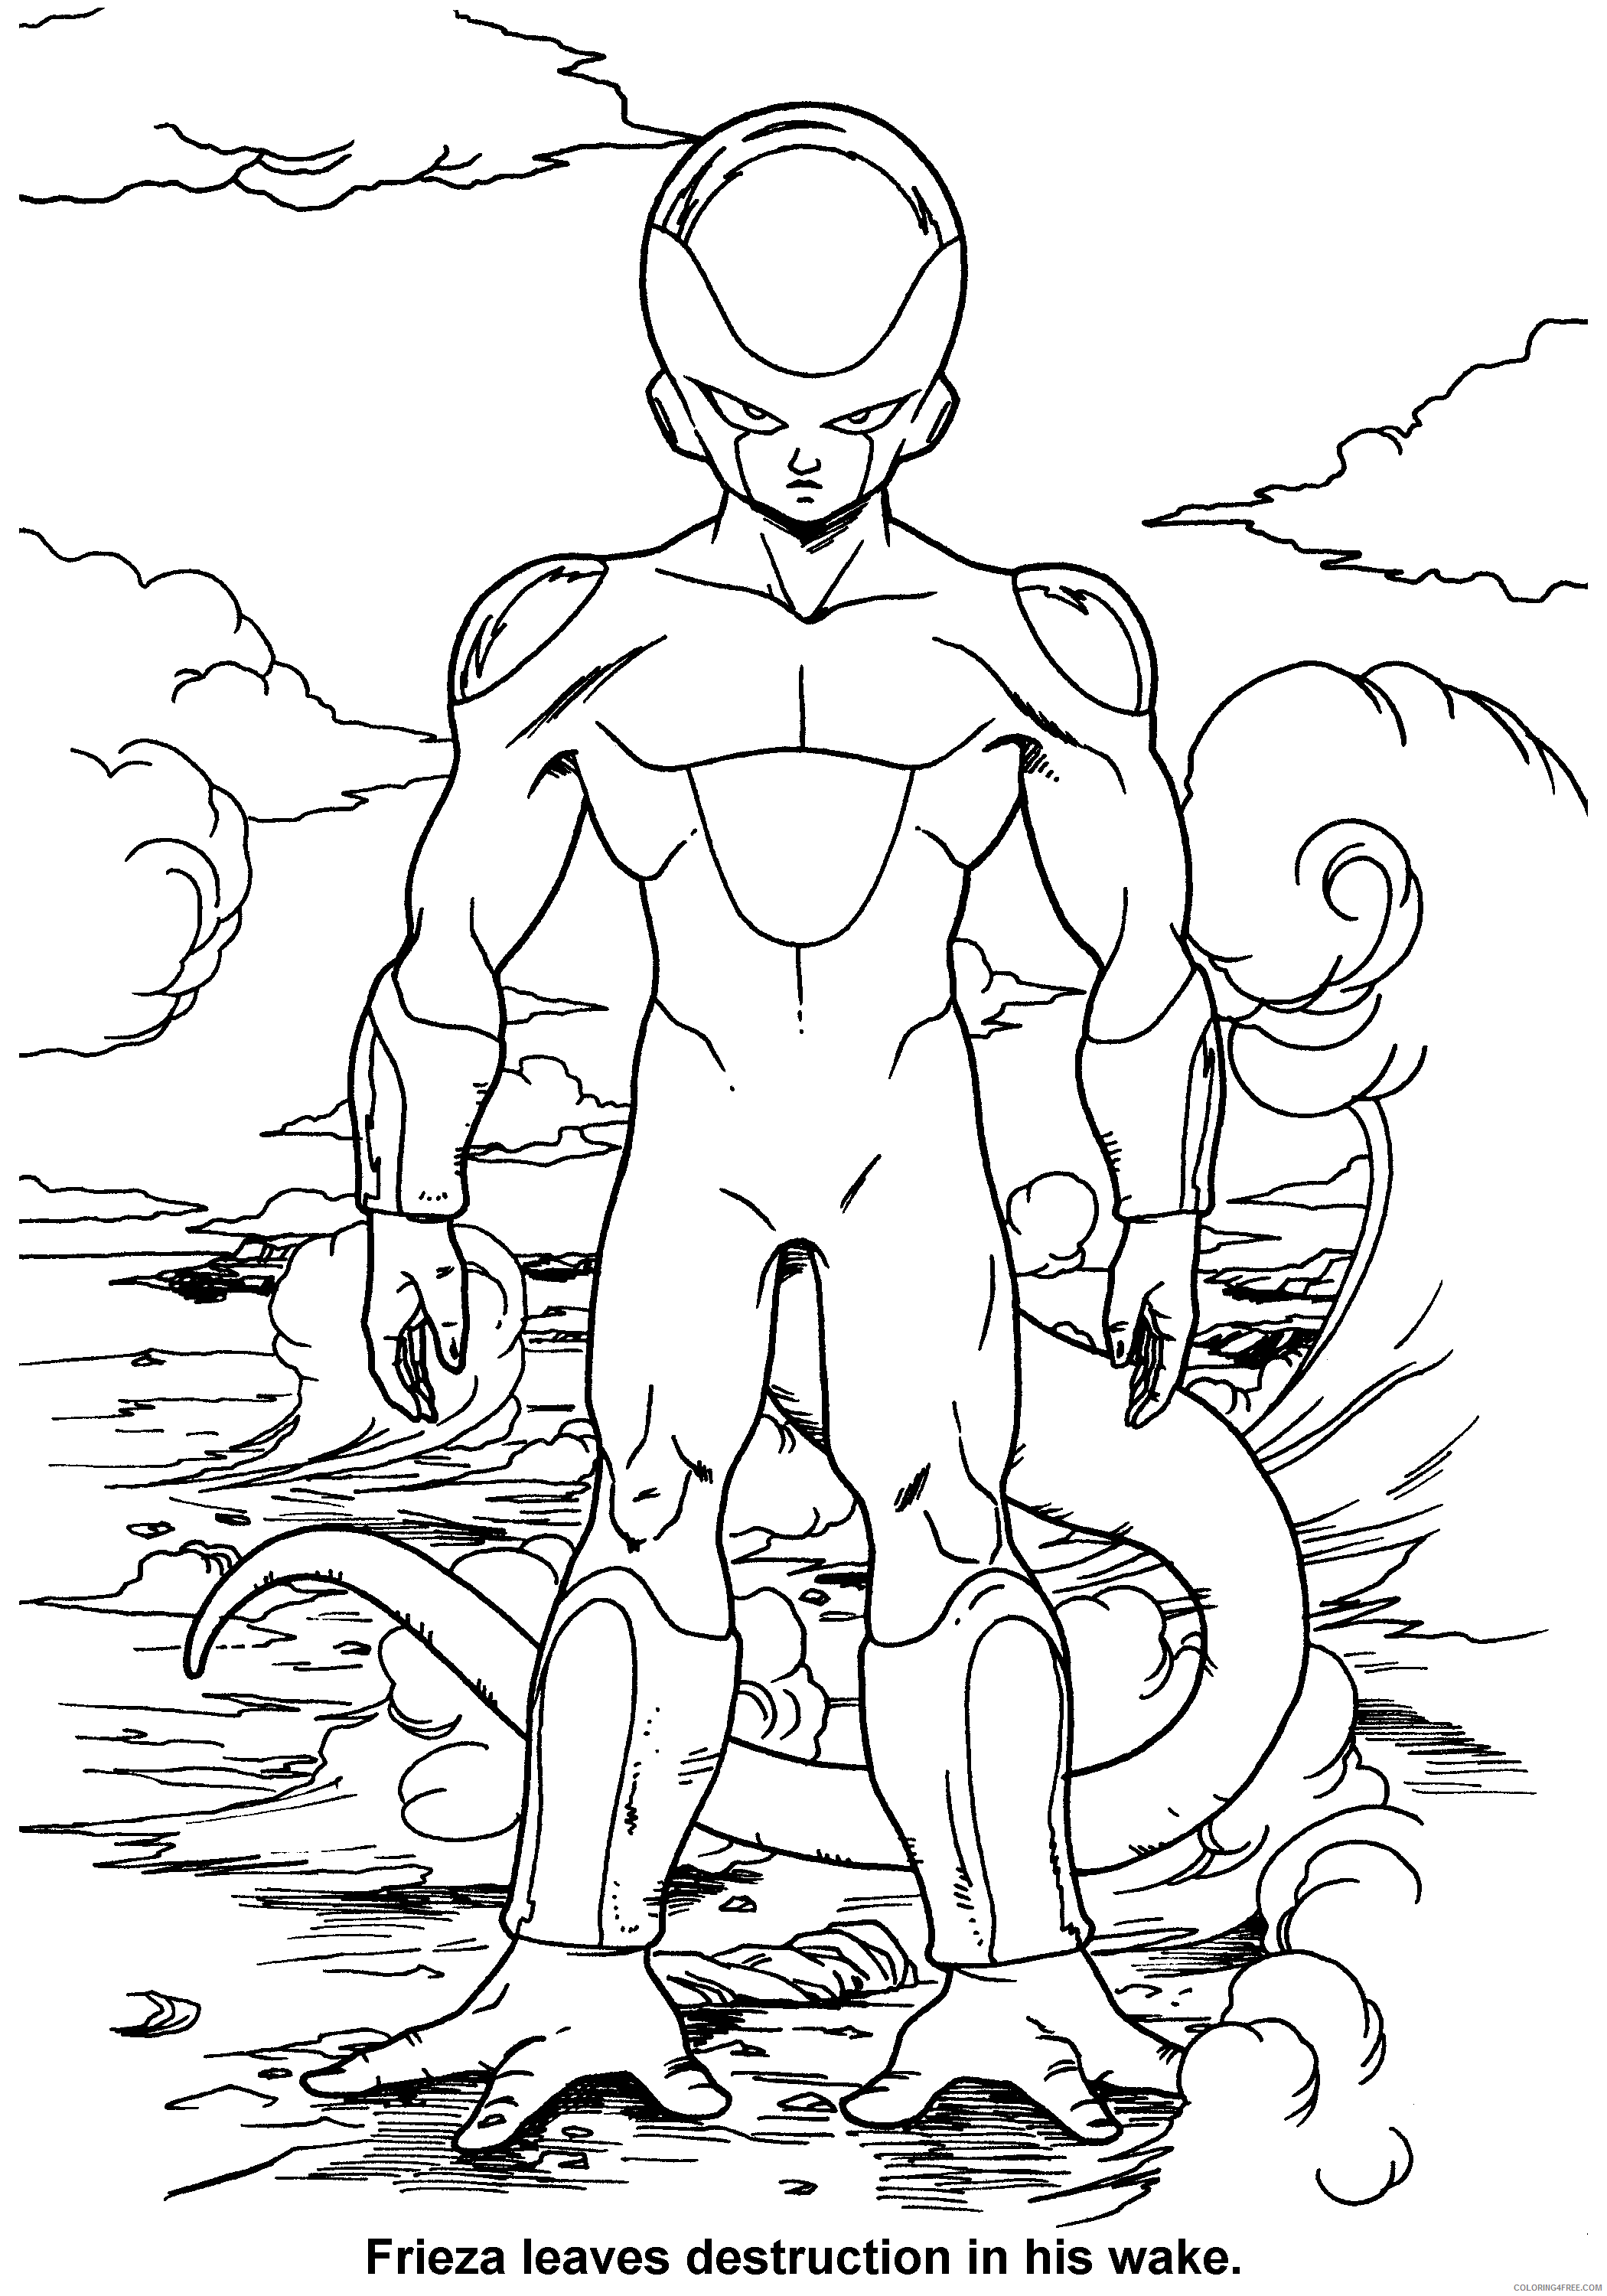 073 dragon ball z frieza leaves destruction in his wake Printable Coloring4free